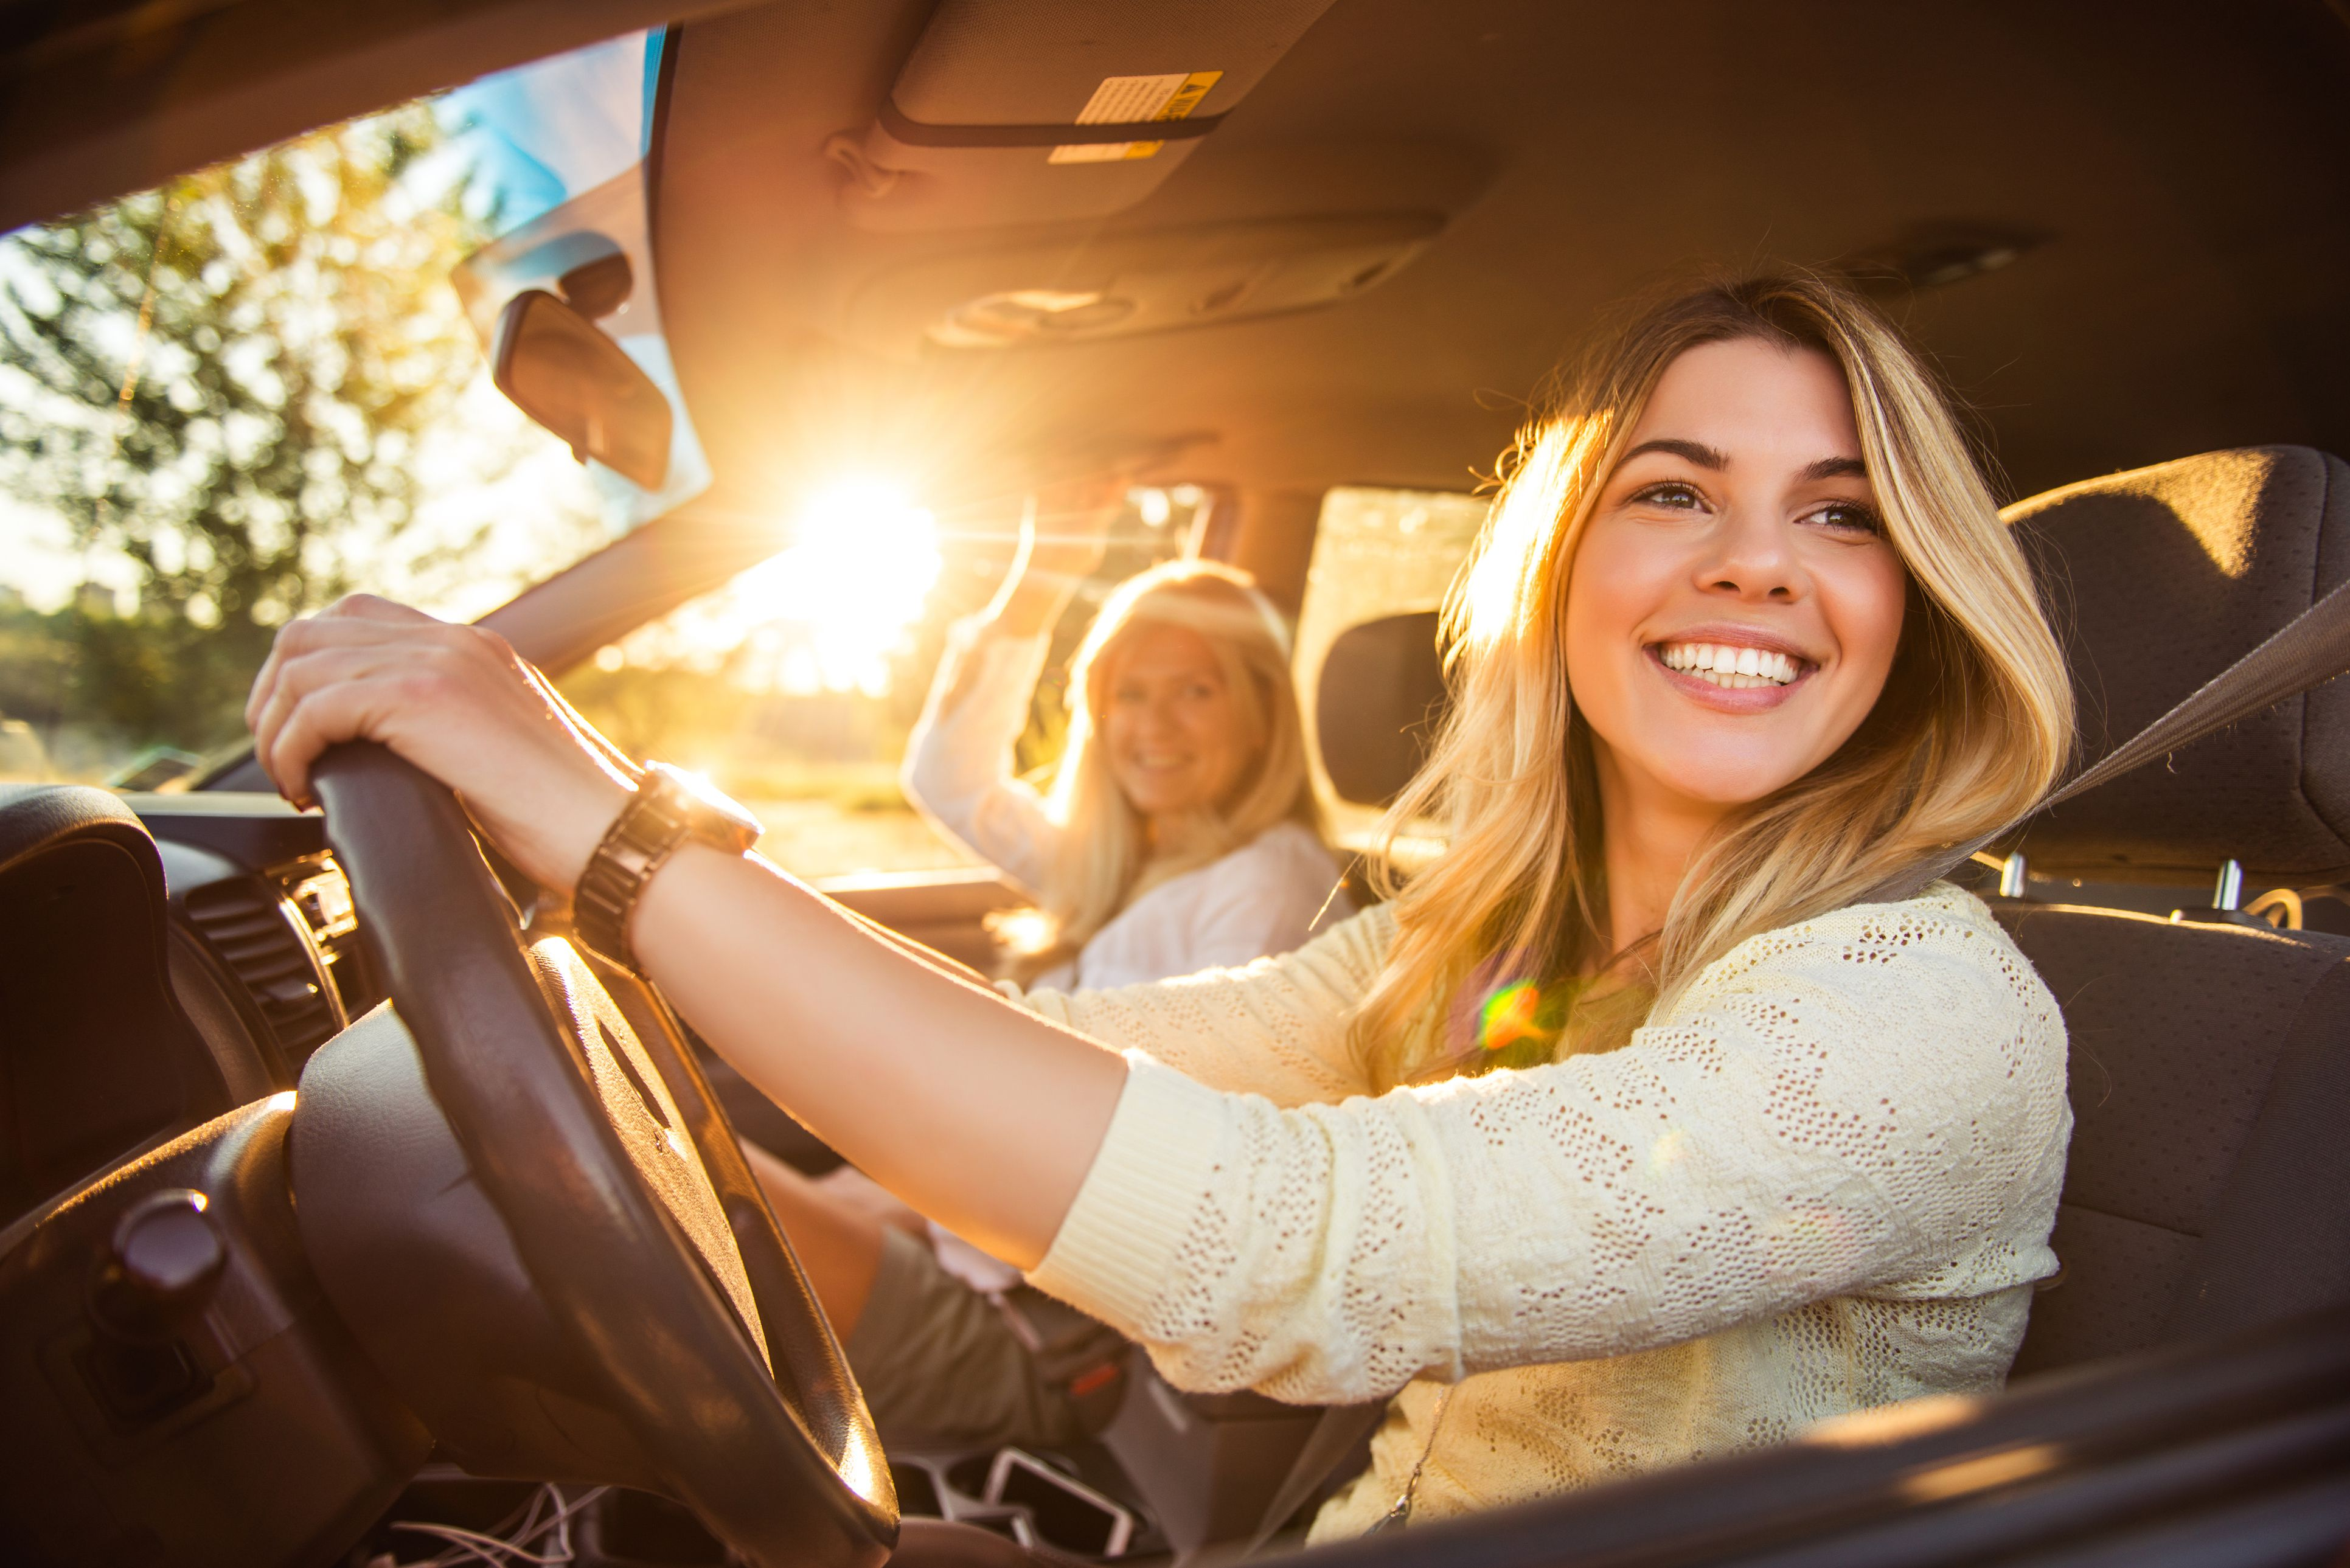 Young woman driving with a friend in the front seat.